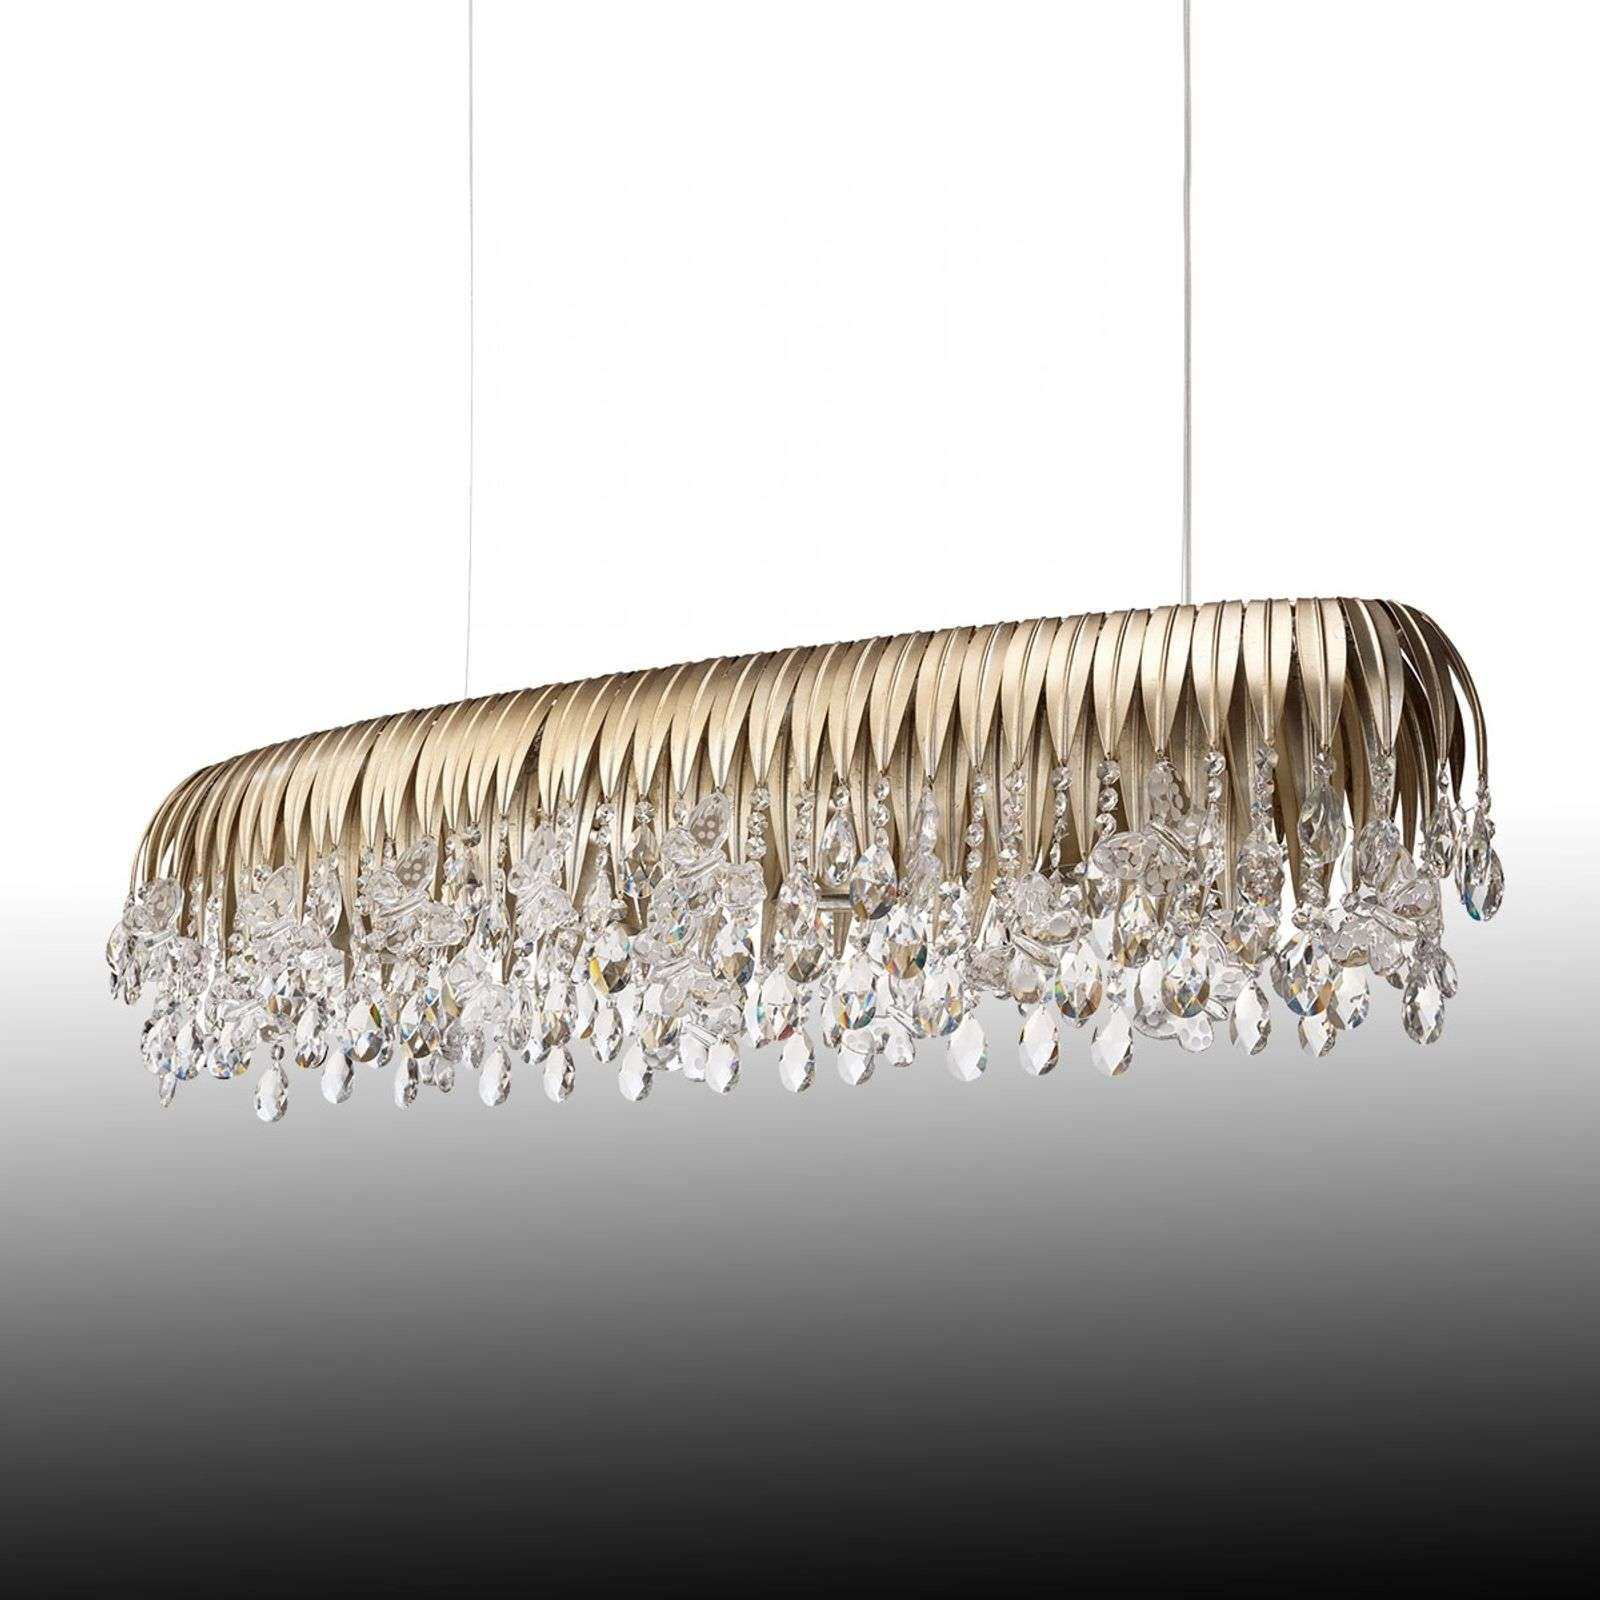 Somptueuse suspension Floralis 120 cm